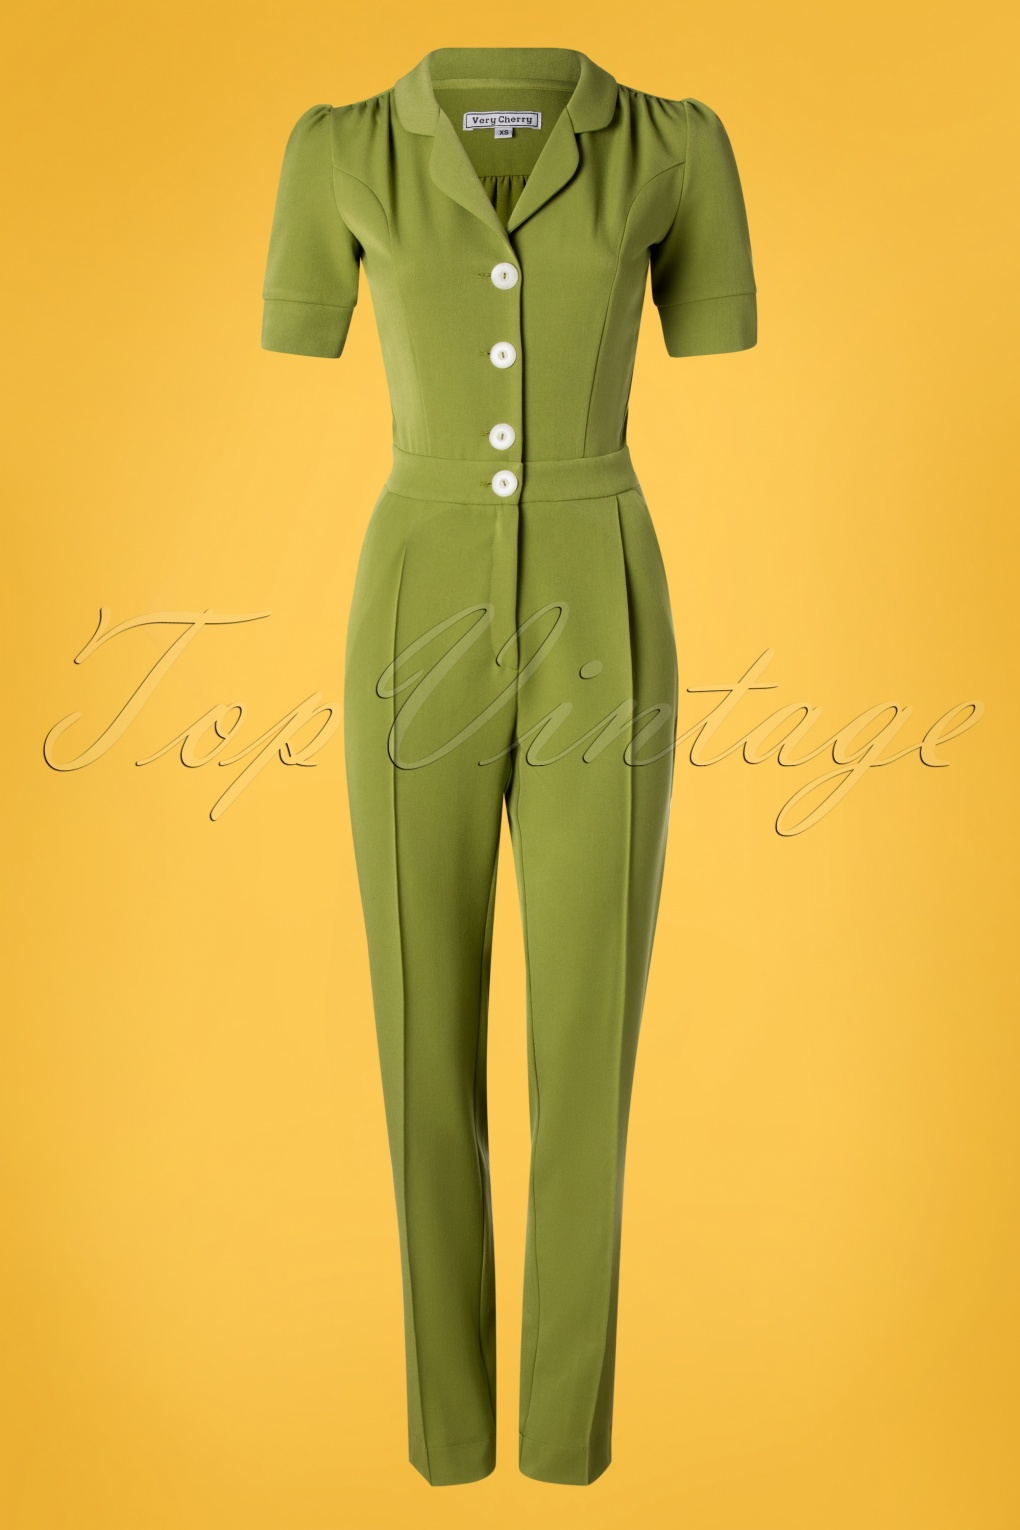 Vintage High Waisted Trousers, Sailor Pants, Jeans 40s Classic Jumpsuit in Olive Green £143.94 AT vintagedancer.com